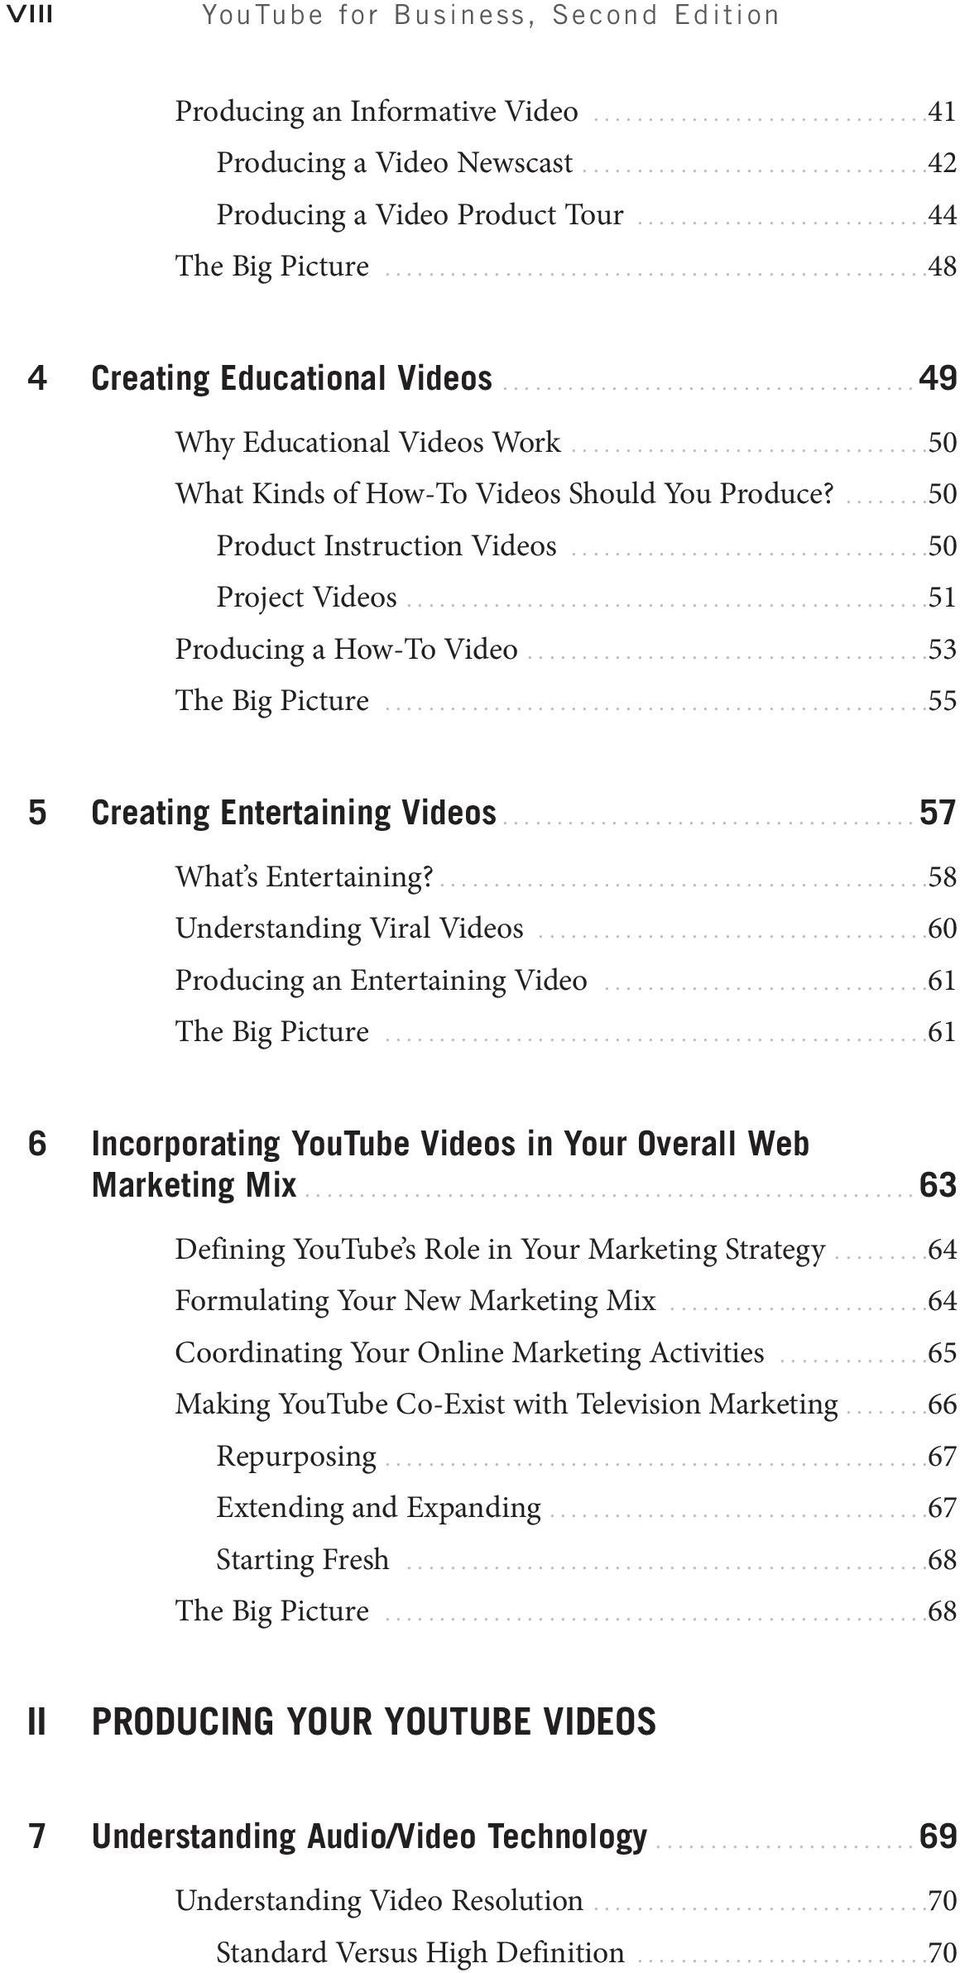 ................................50 What Kinds of How-To Videos Should You Produce?........50 Product Instruction Videos.................................50 Project Videos................................................51 Producing a How-To Video.